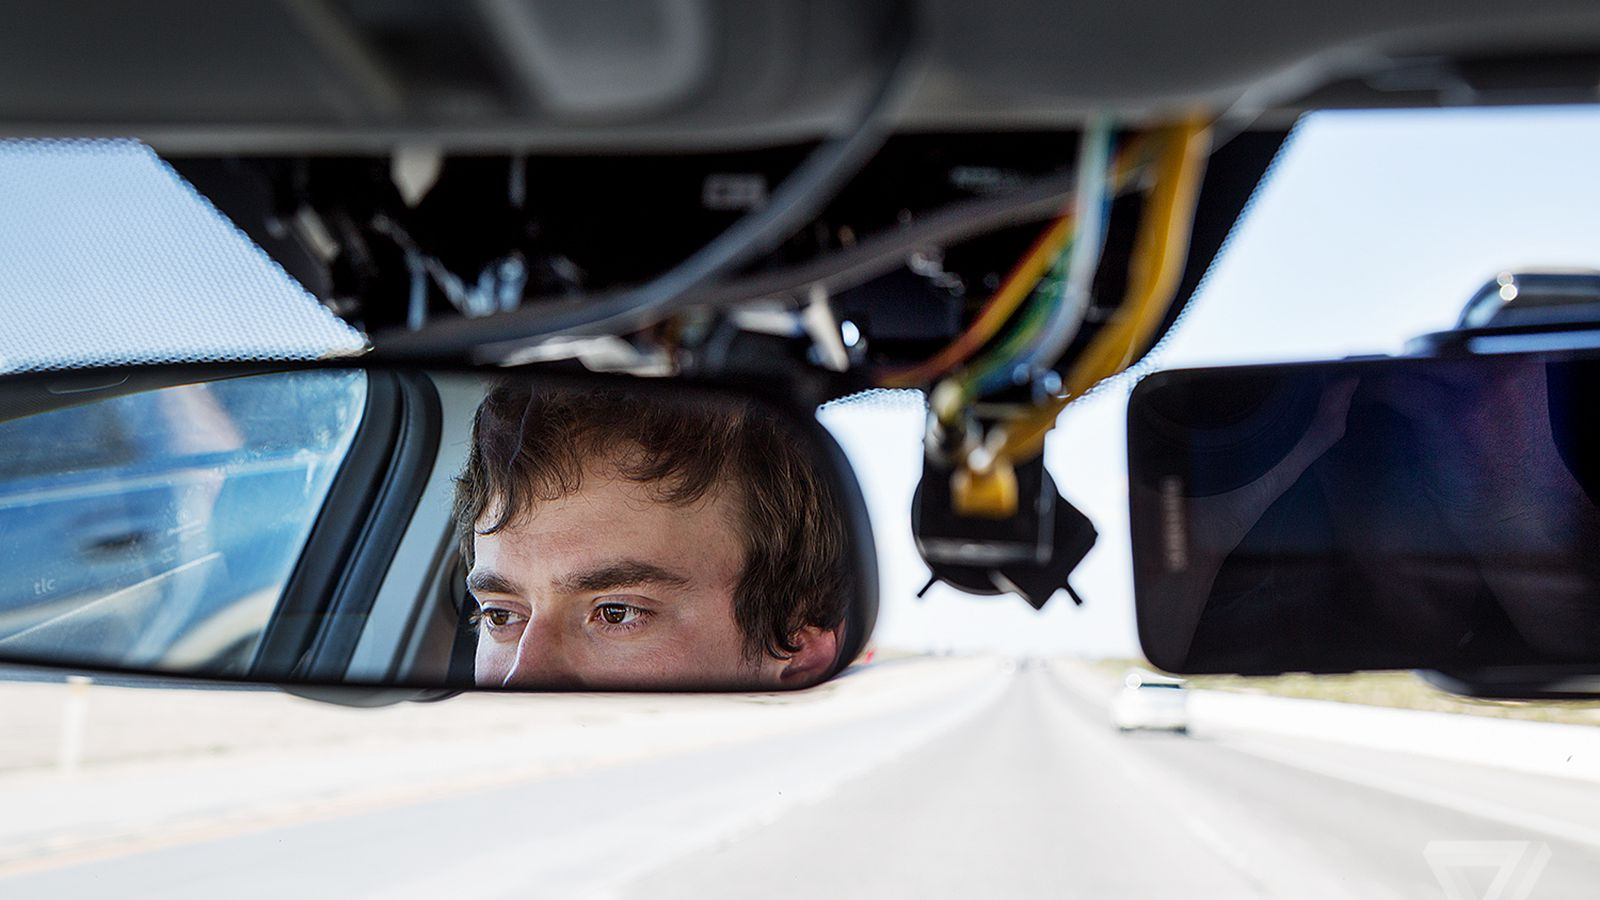 George Hotz is giving away the code behind his self-driving car project